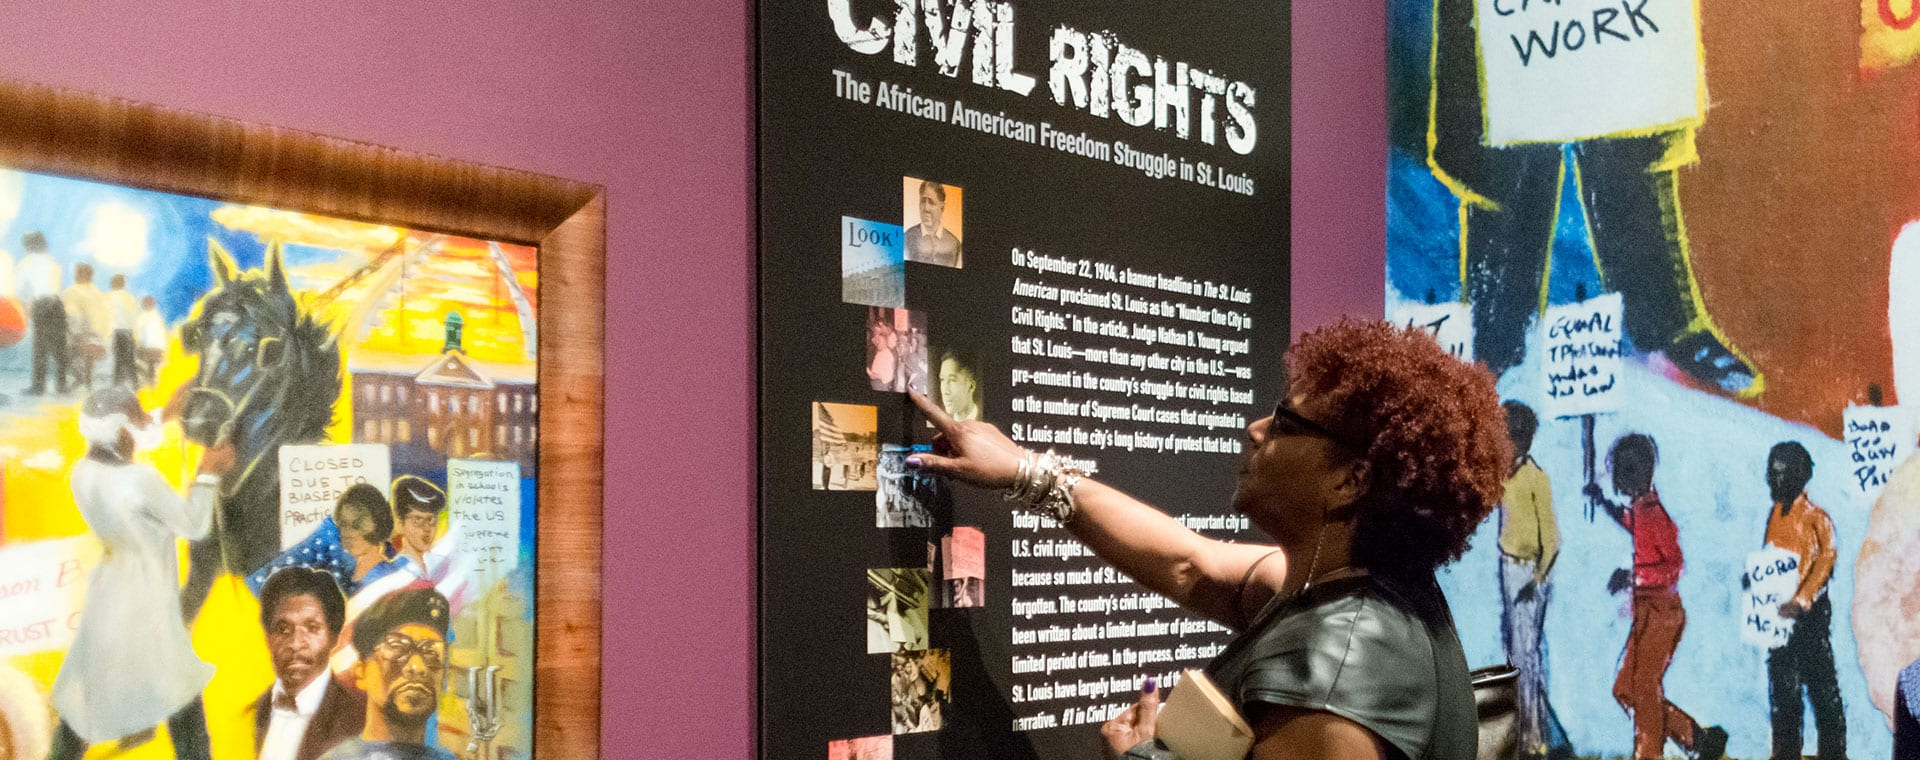 Maryville's sponsorship of the Civil Rights exhibit at the Missouri History Museum